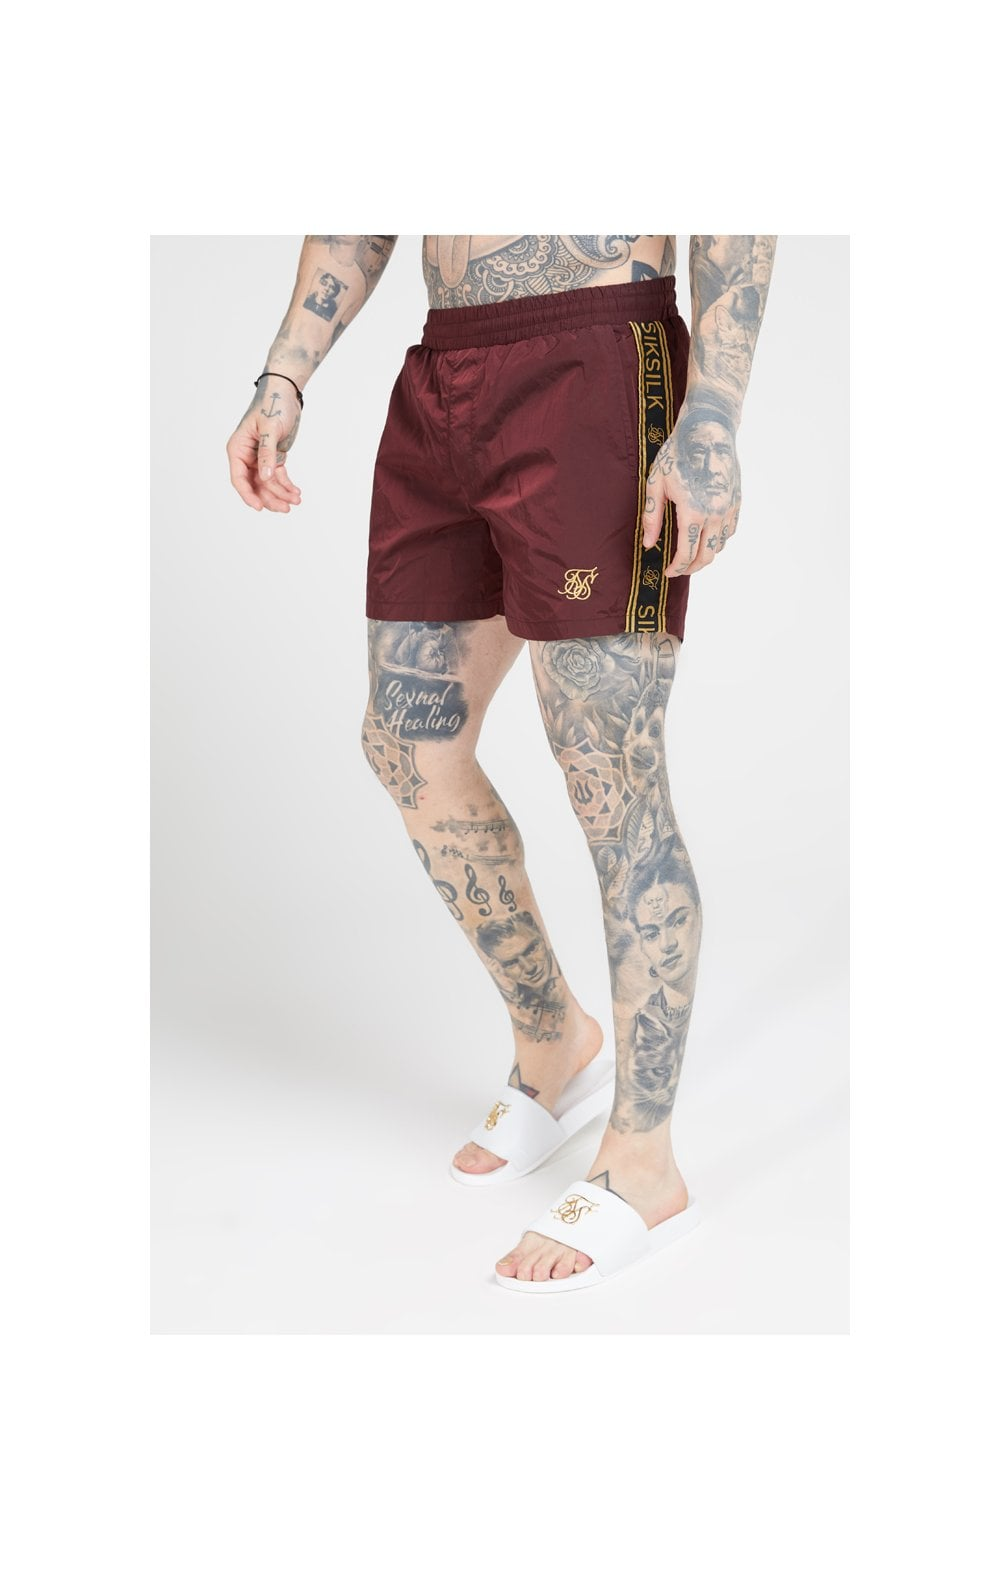 SikSilk Crushed Nylon Tape Shorts – Burgundy & Gold (1)